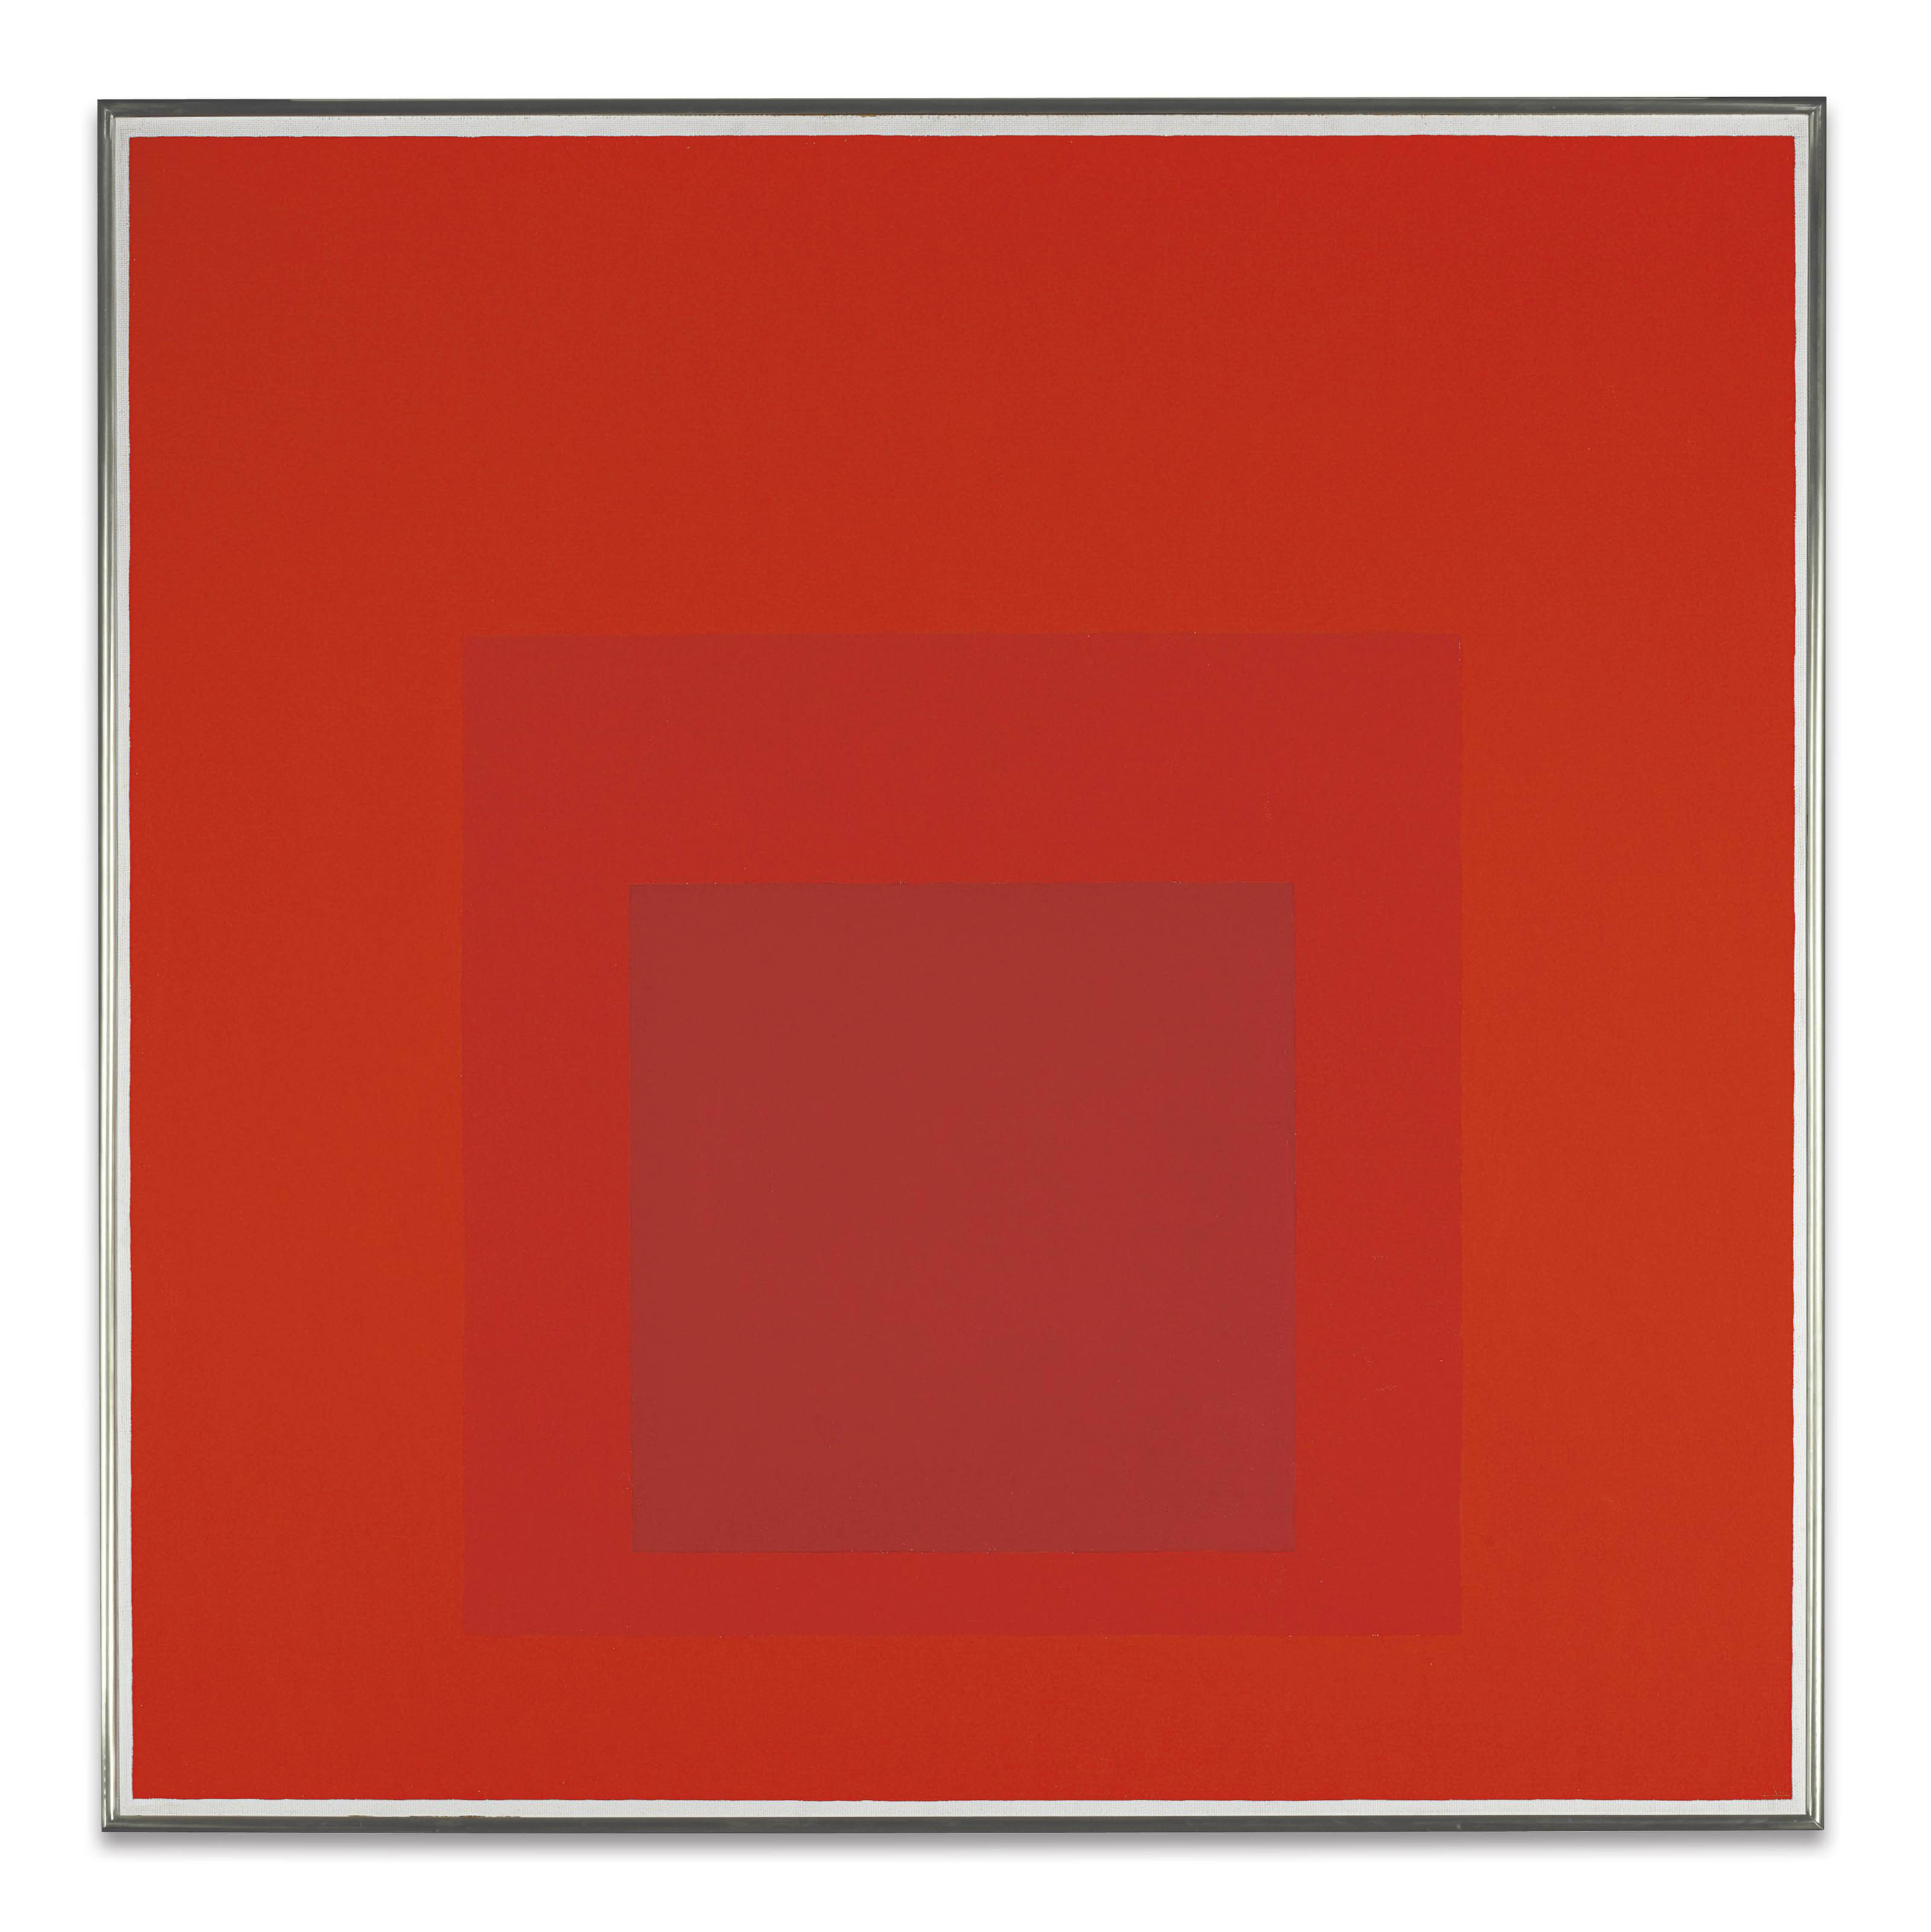 Homage to the Square: Distant Alarm